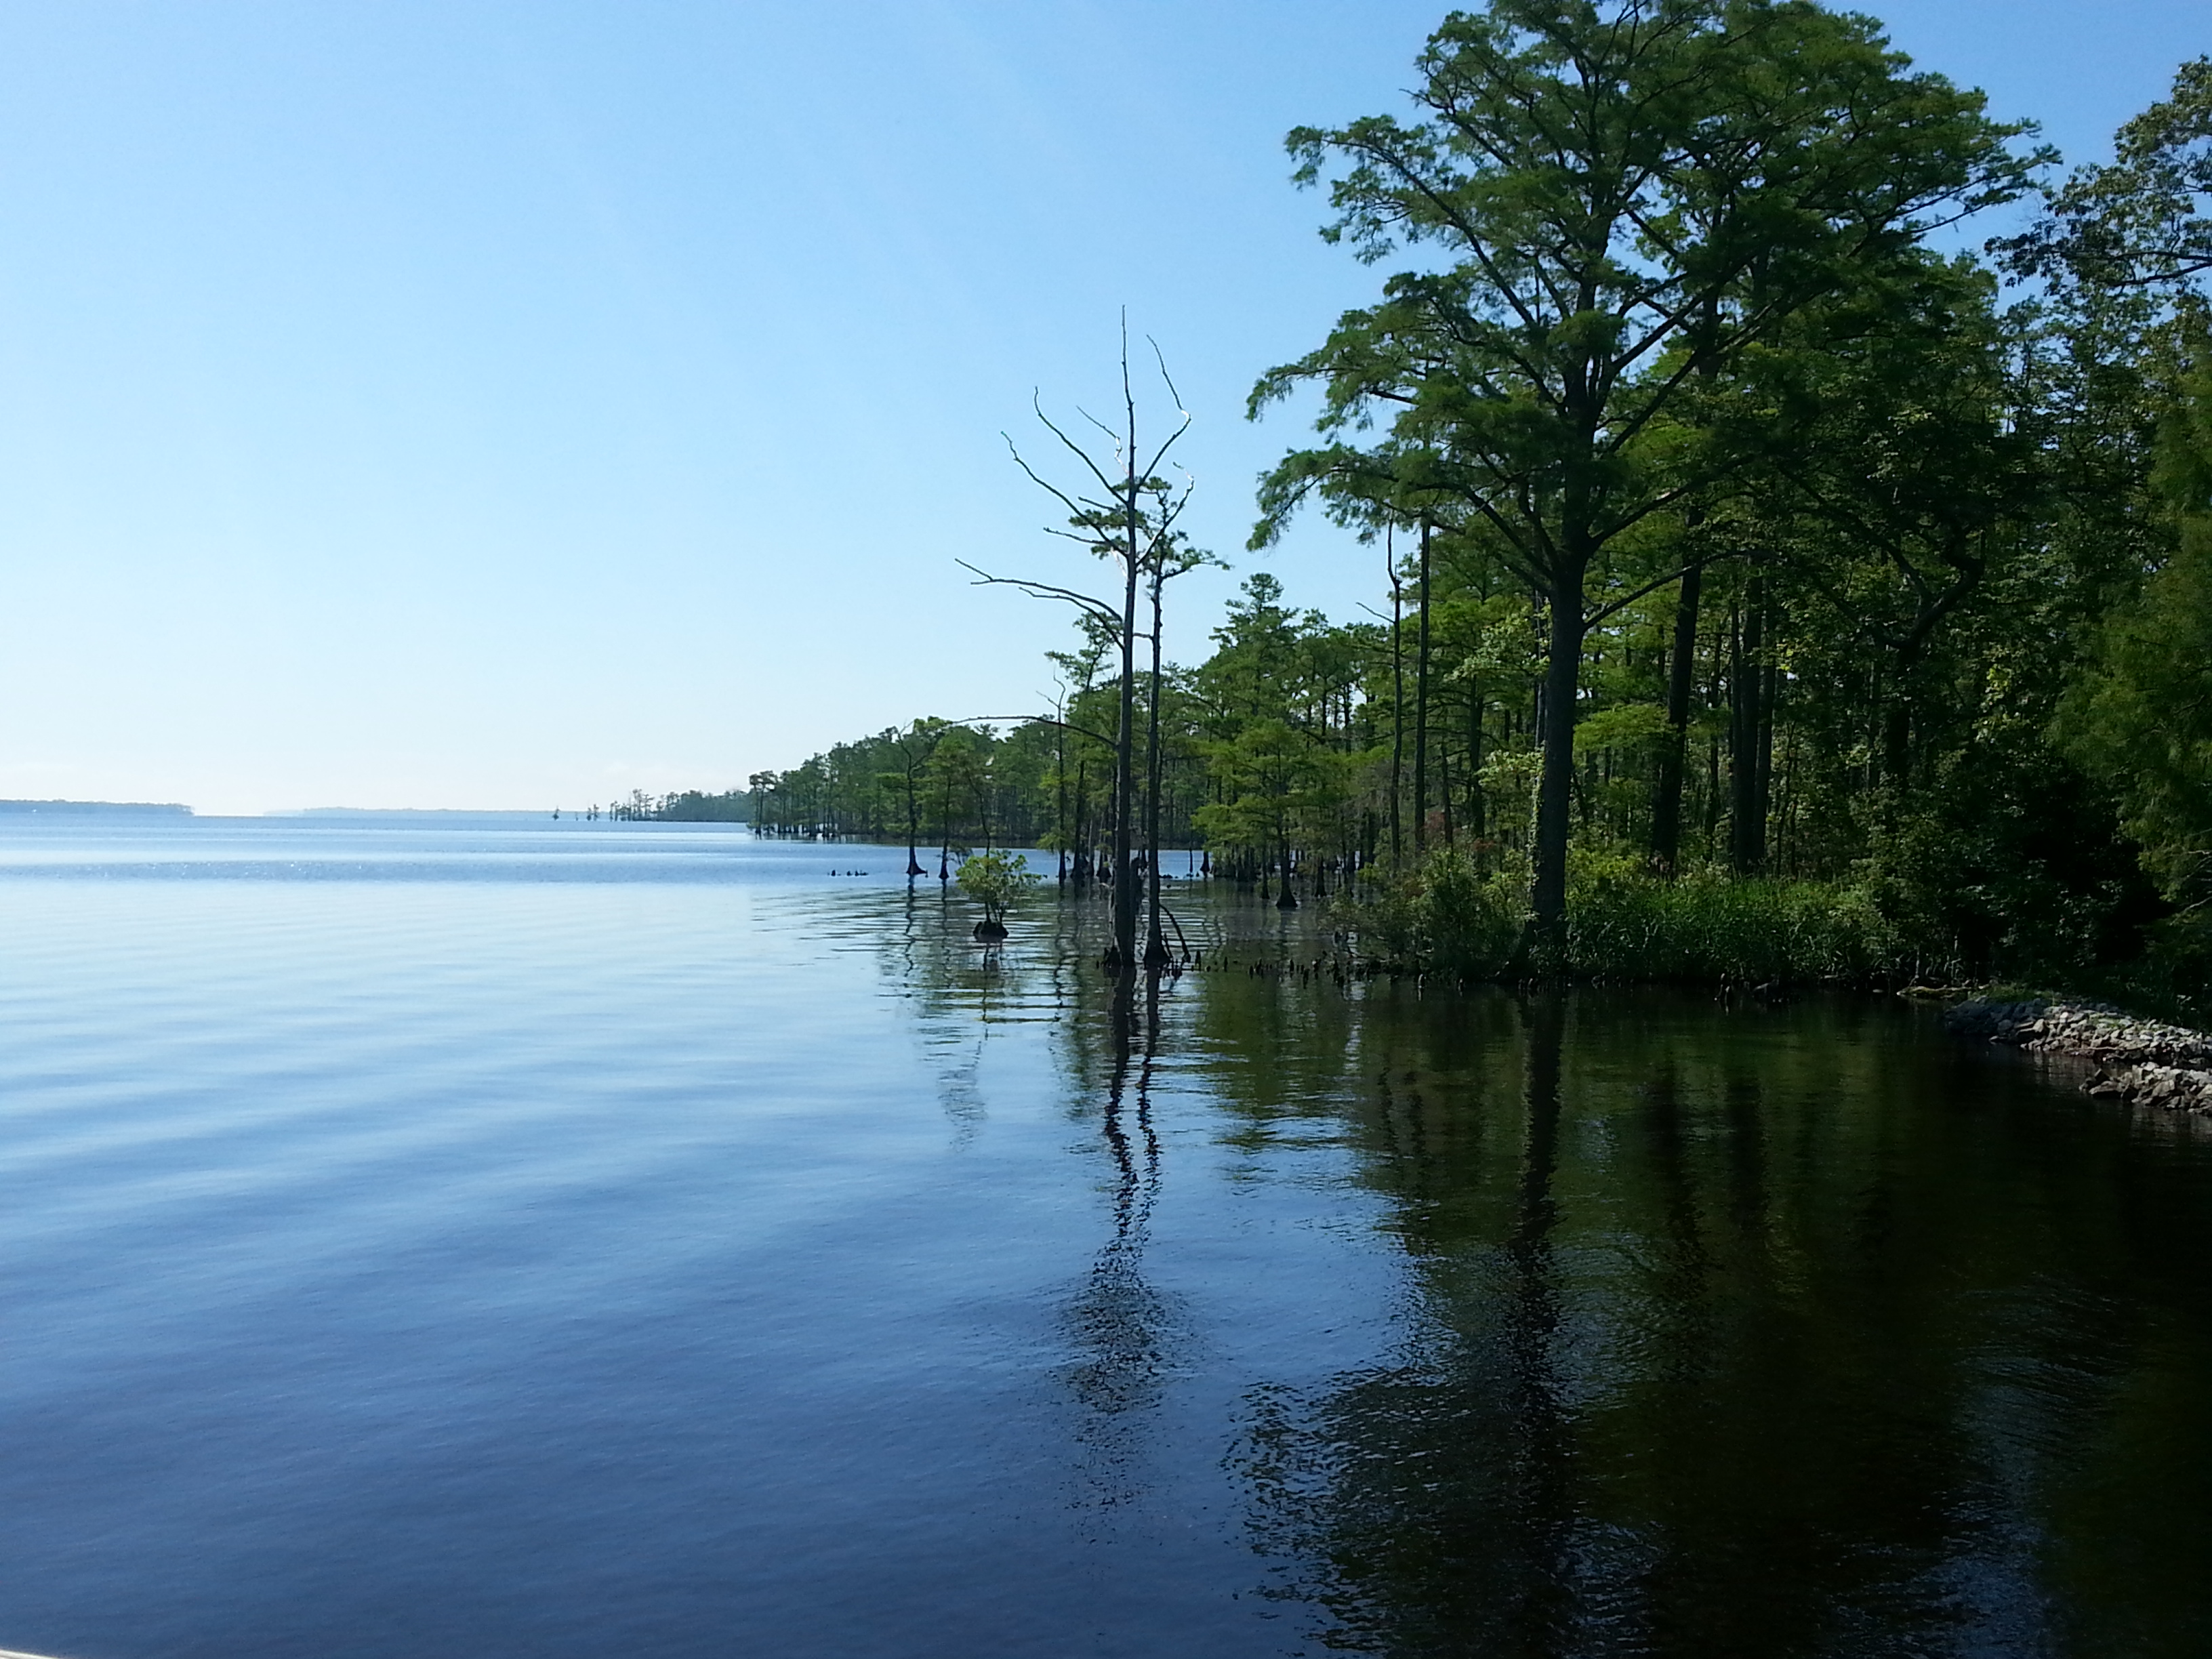 The Perquimans River is a coastal waterway in Northeastern North Carolina of Hertford